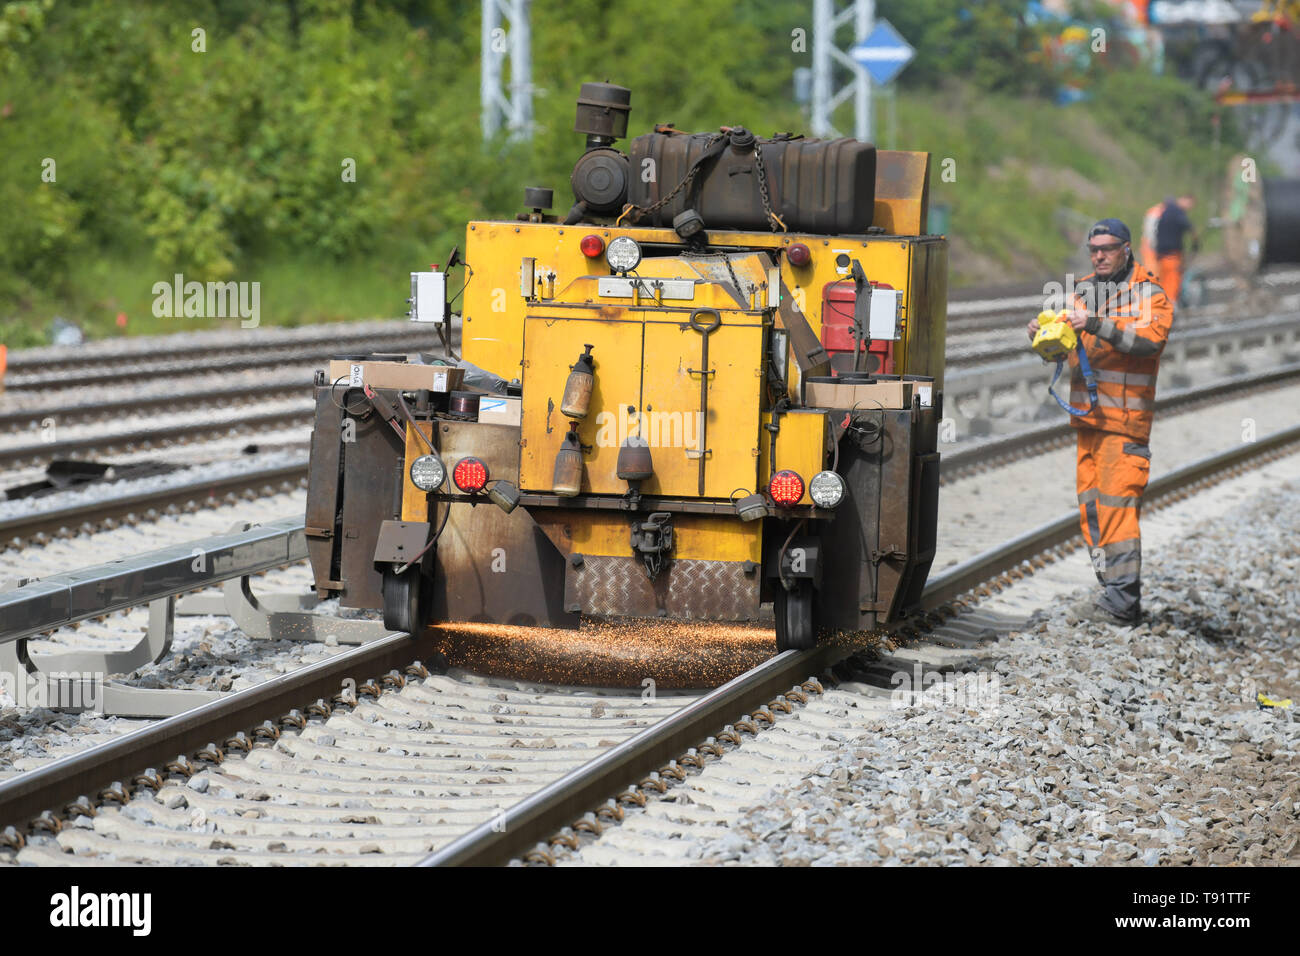 Berlin, Germany. 15th May, 2019. New tracks will be ground during construction work on the eastern Berlin S-Bahn ring between Greifswalder Straße and Prenzlauer Allee. Since 8 April 2019, travellers have had to live with considerable restrictions. The work is due to be completed on 20 May. Credit: Jörg Carstensen/dpa/Alamy Live News - Stock Image